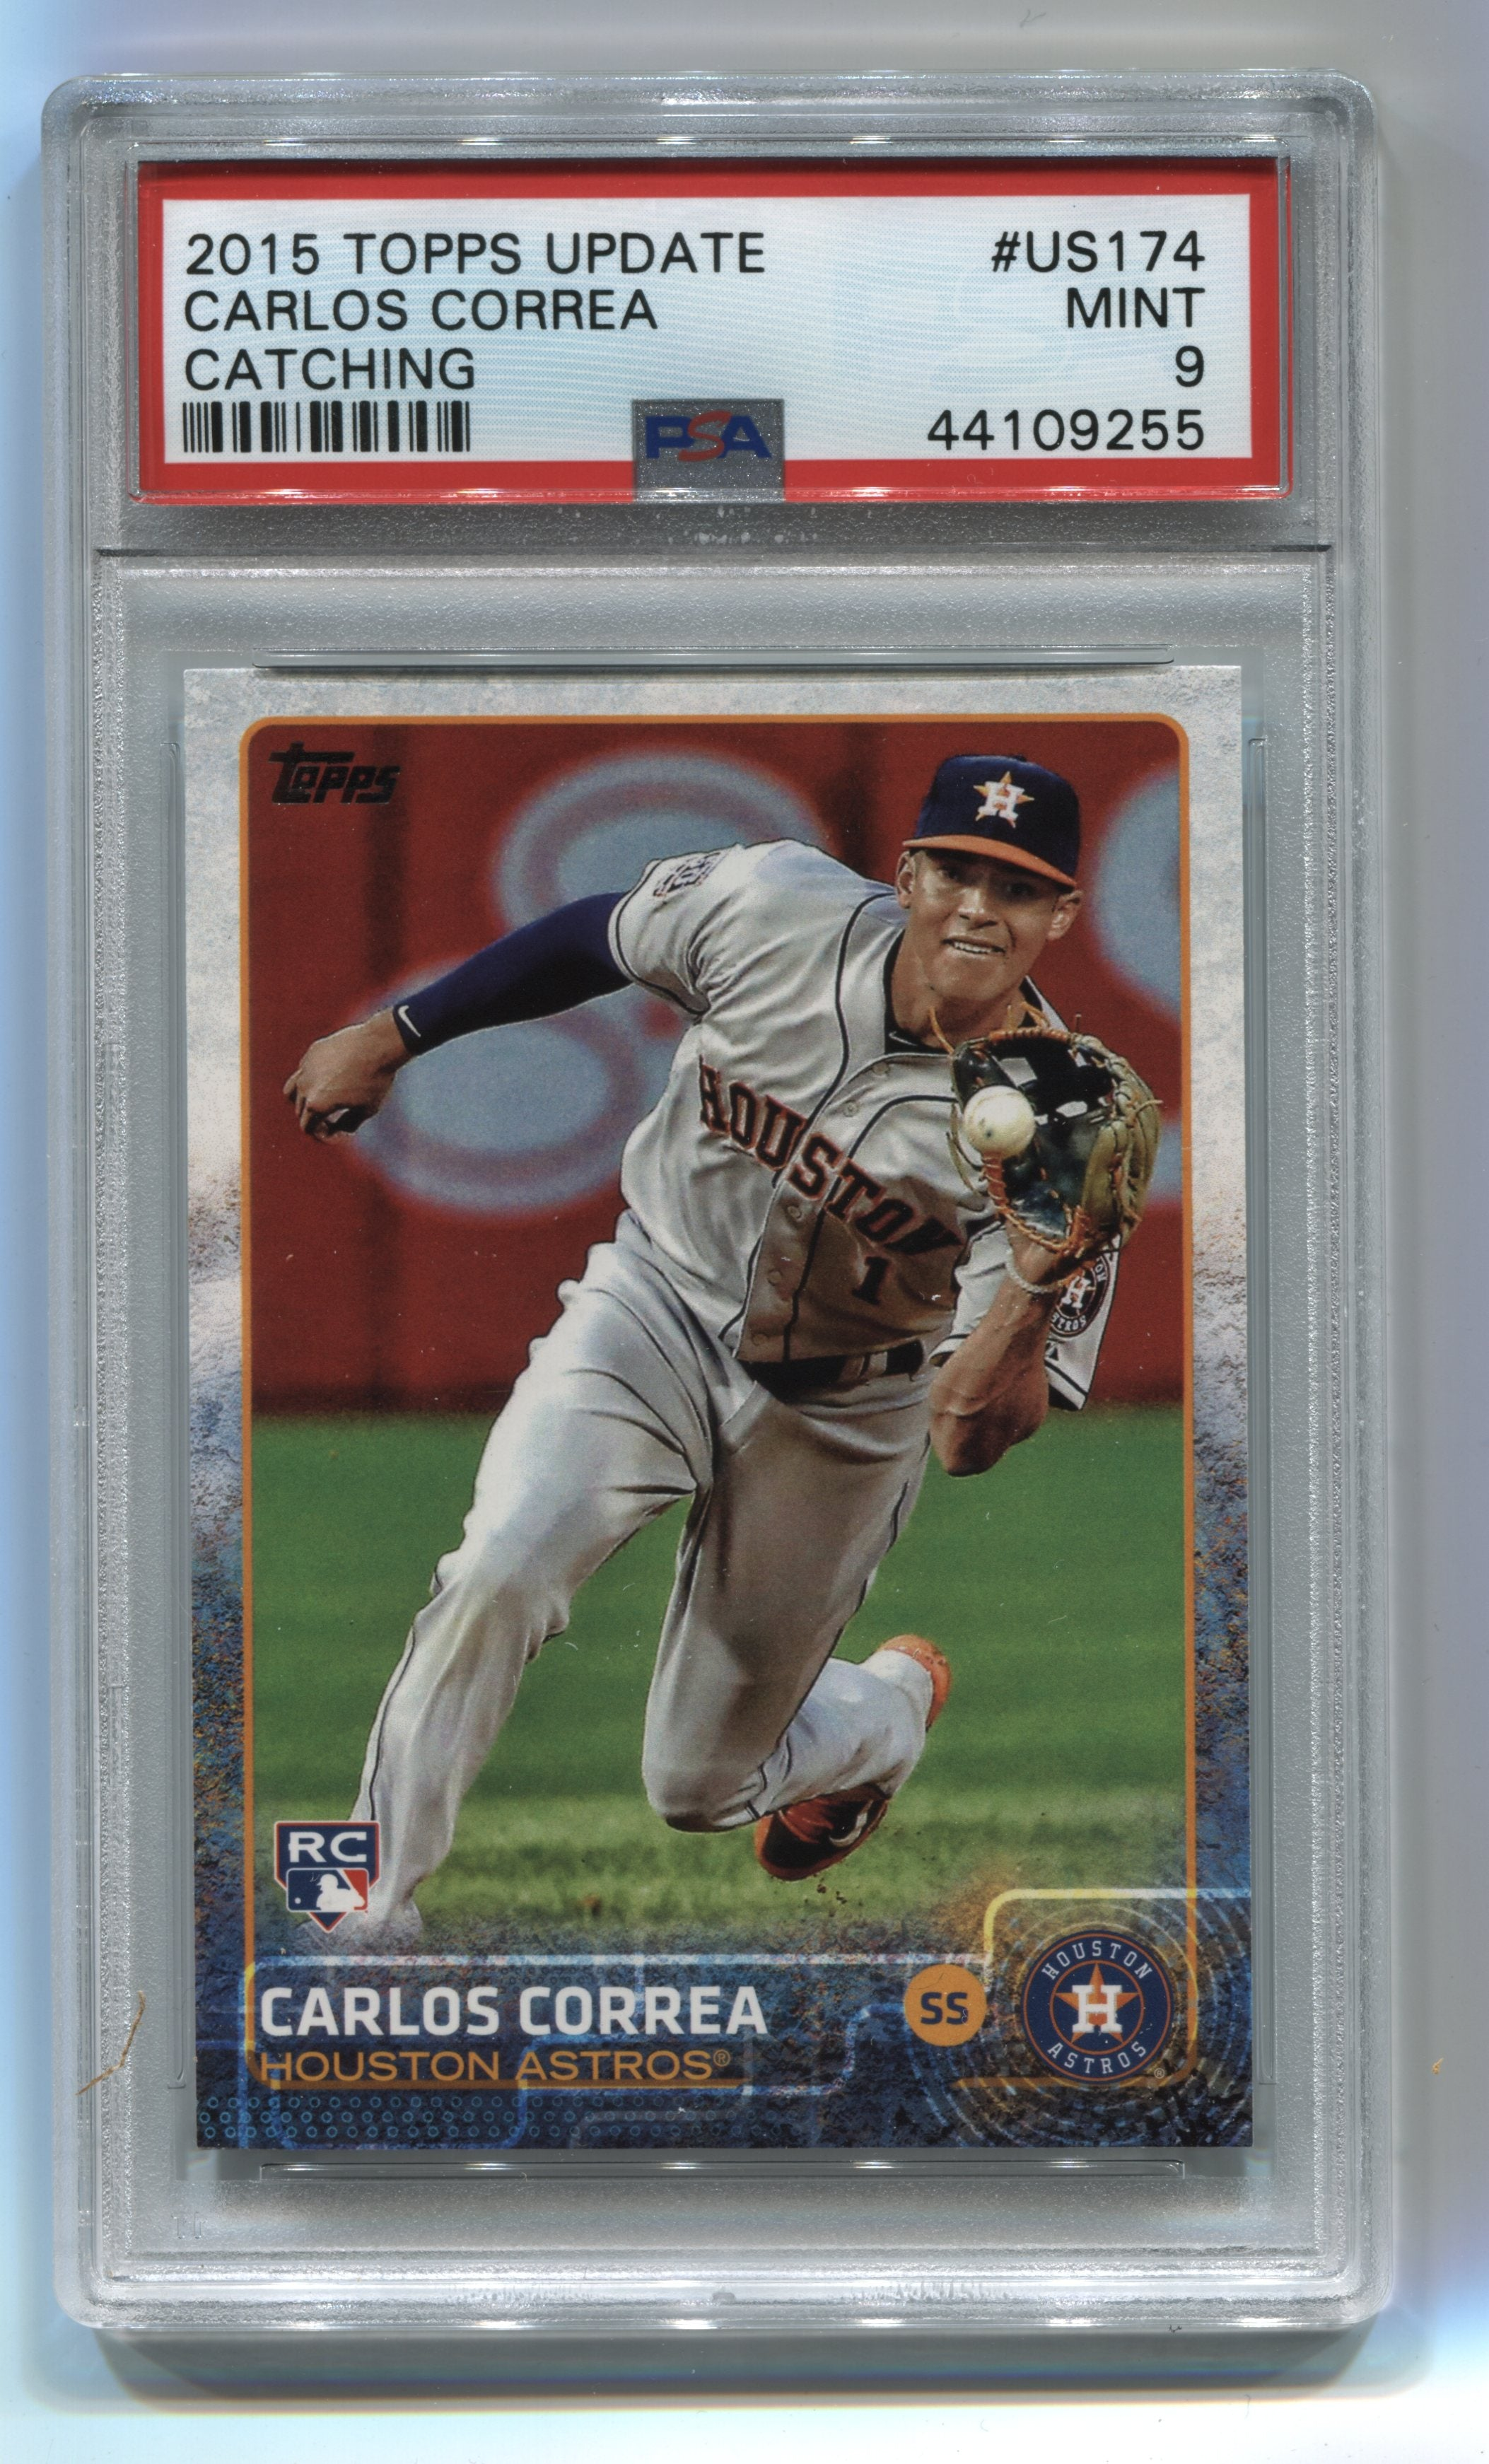 2015 Topps Update #US174 Carlos Correa PSA 9 (Rookie) | Eastridge Sports Cards